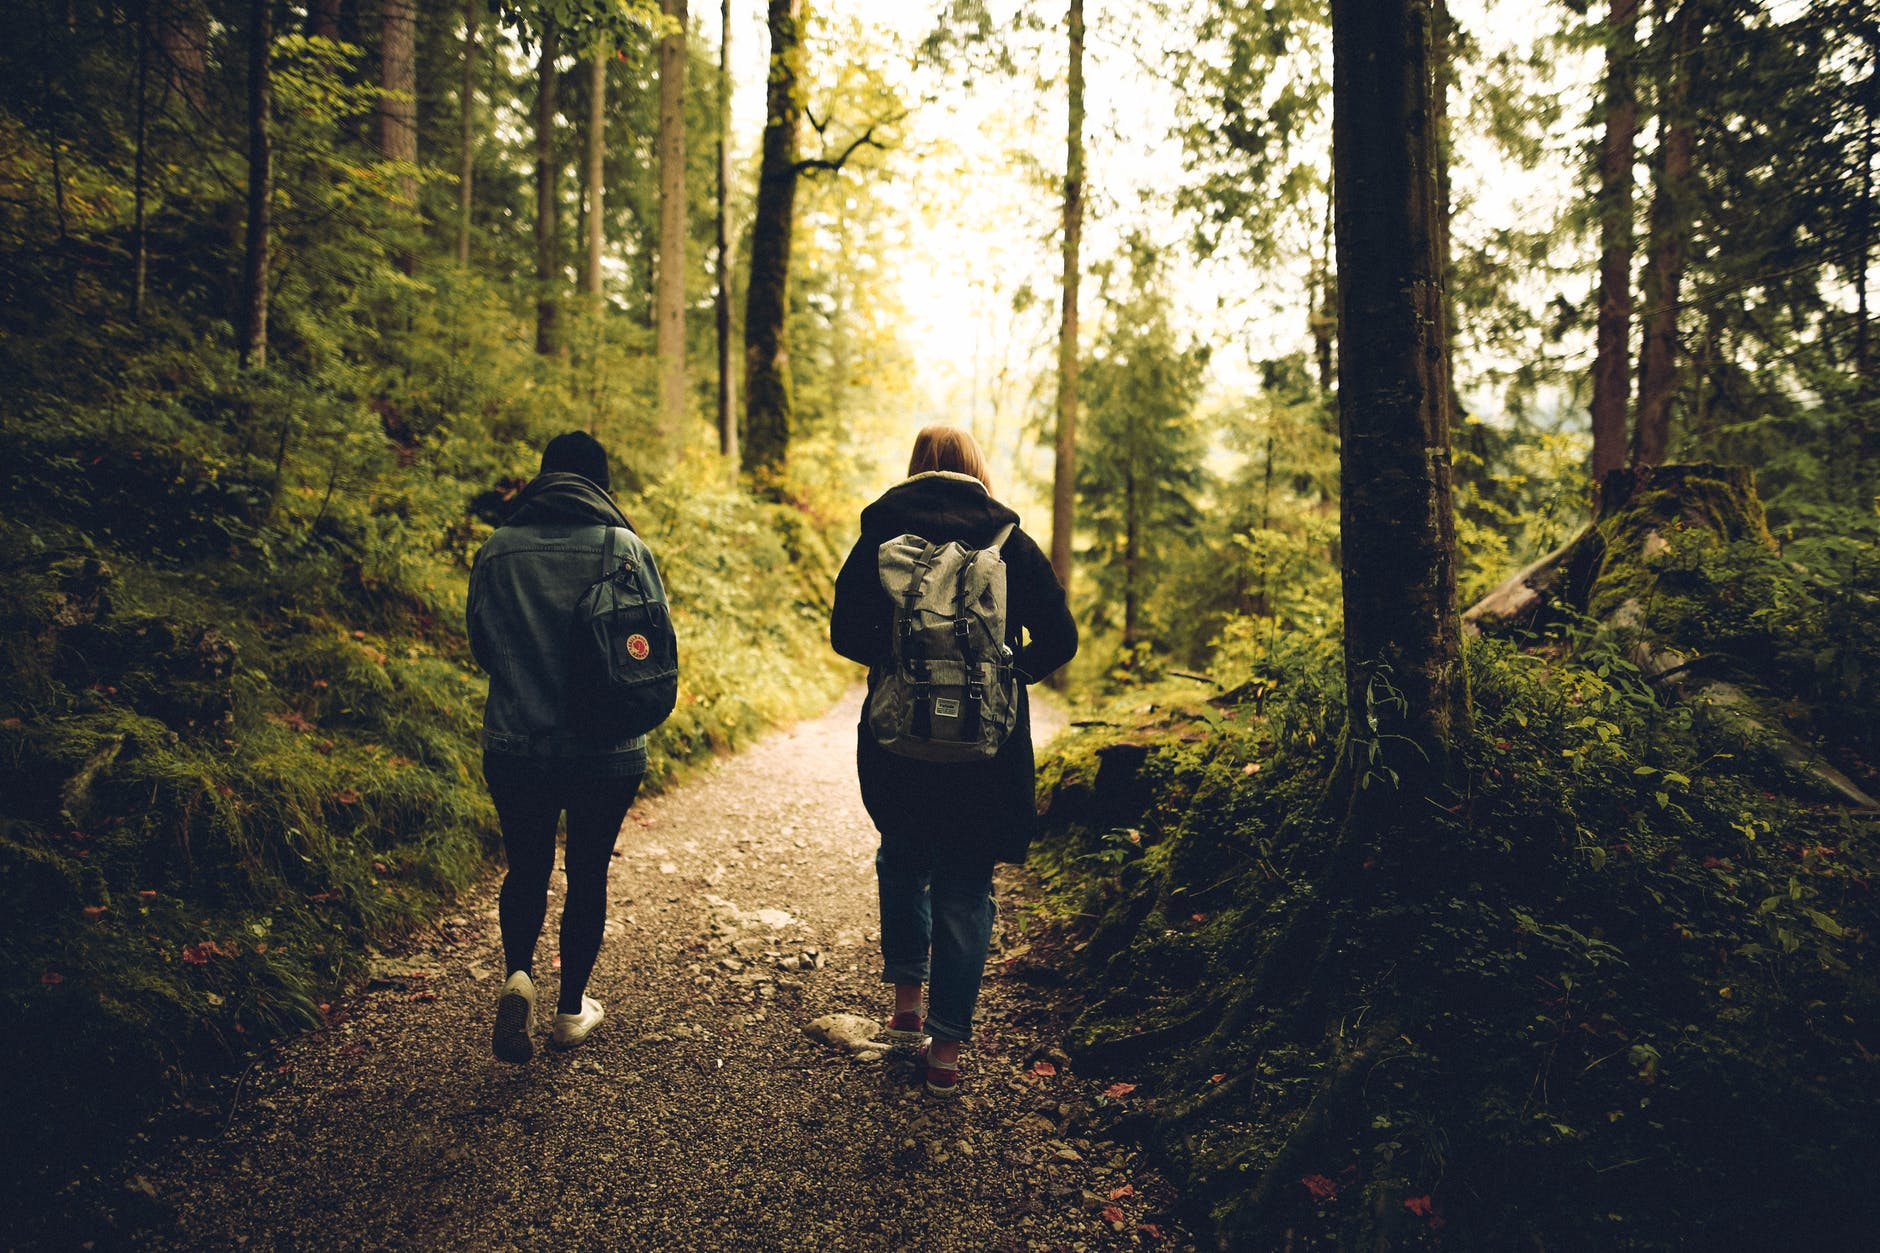 Benefits of Simple Walking – Mental as well as physical!